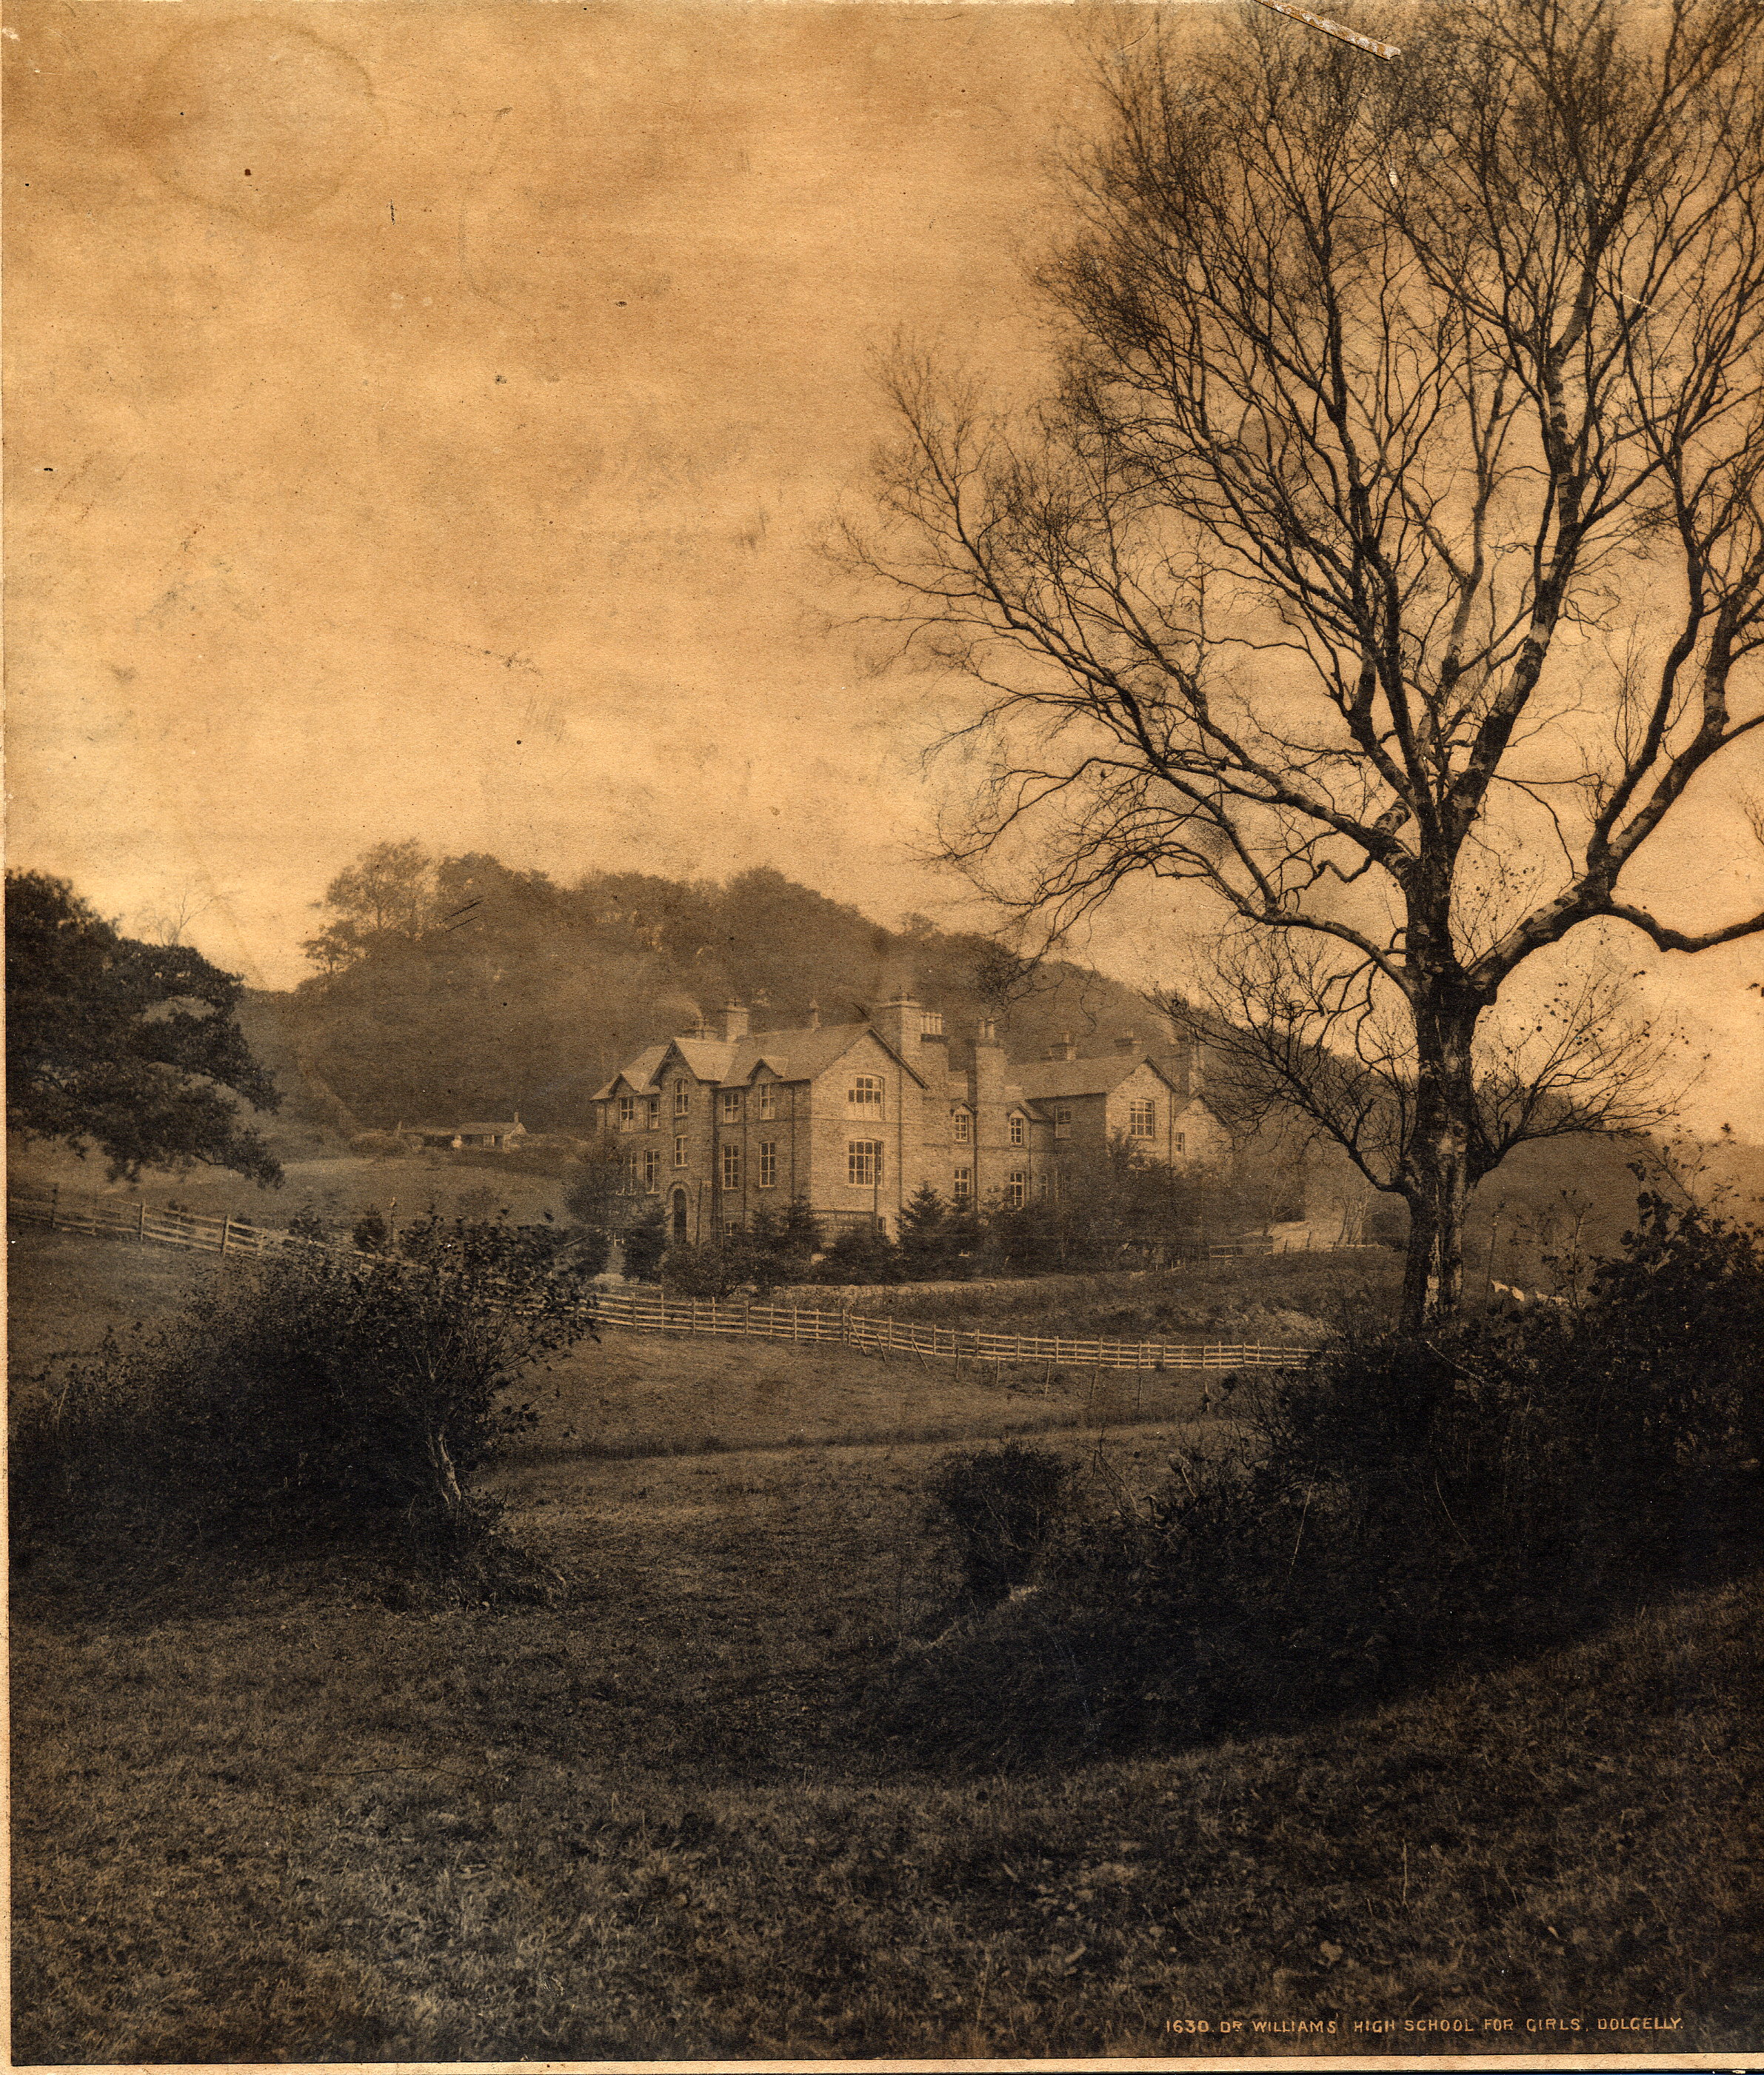 View of Dr Williams' School in 1880s